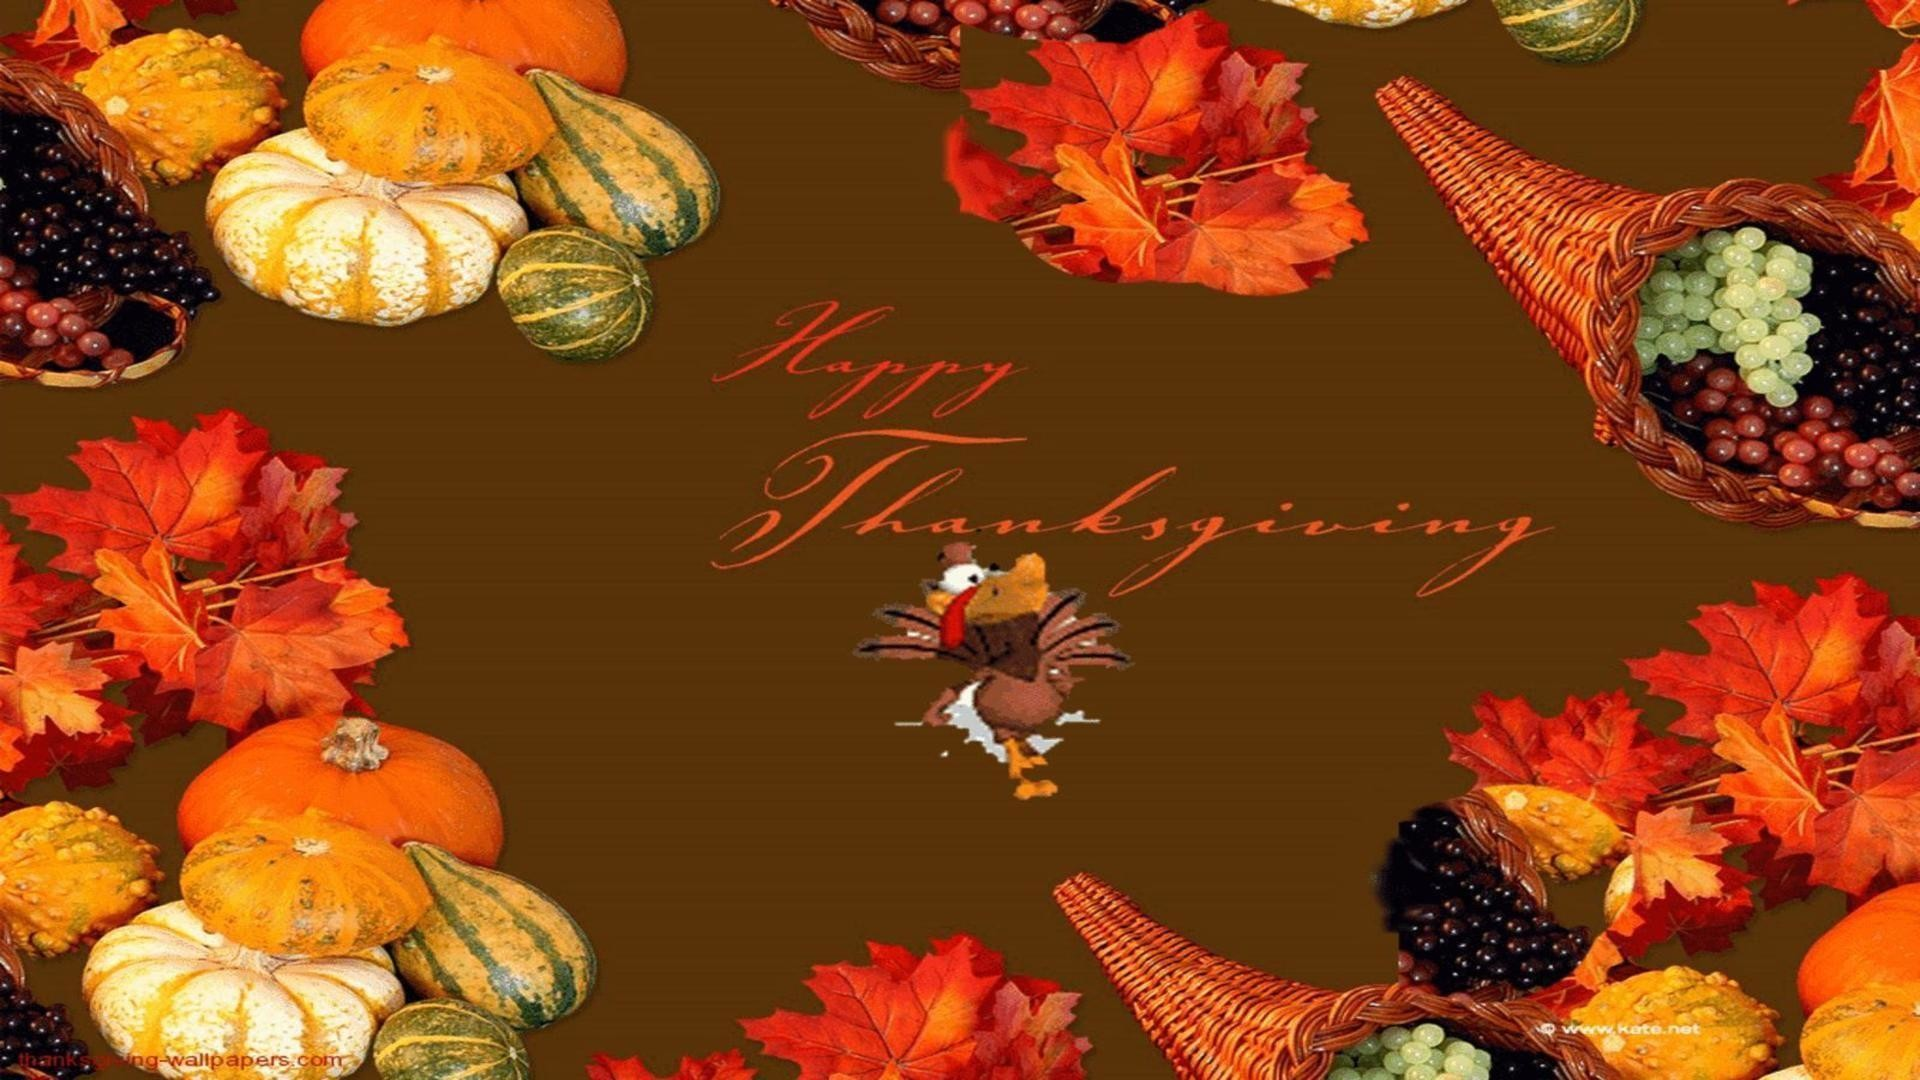 1920x1080 happy-thanksgiving-day-free-greeting-card-free-des.jpg